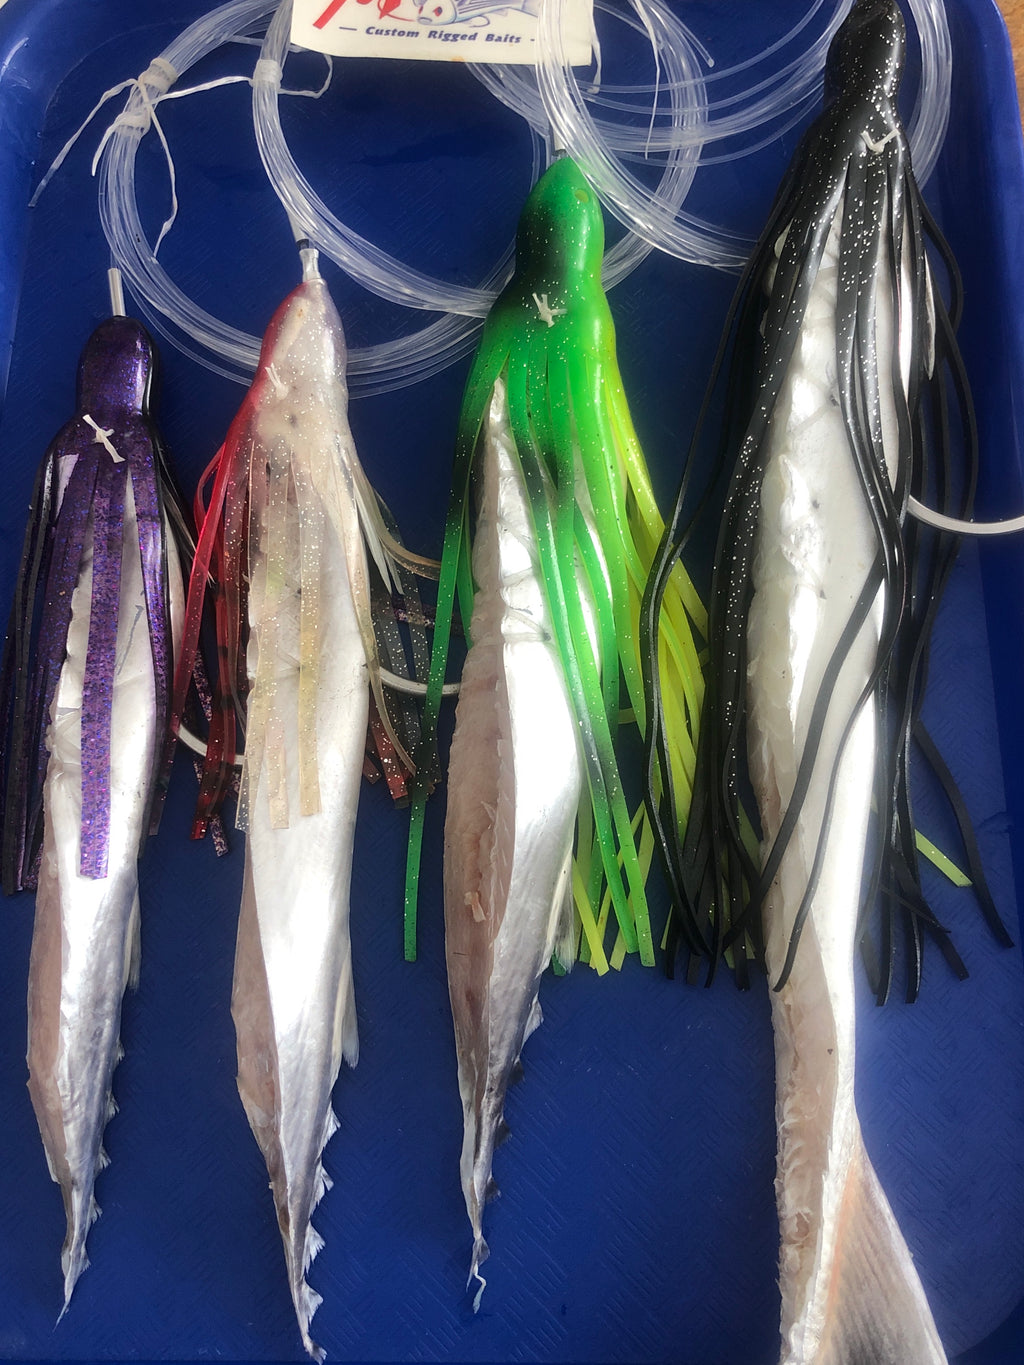 Sword bait Bonita belly 1pk